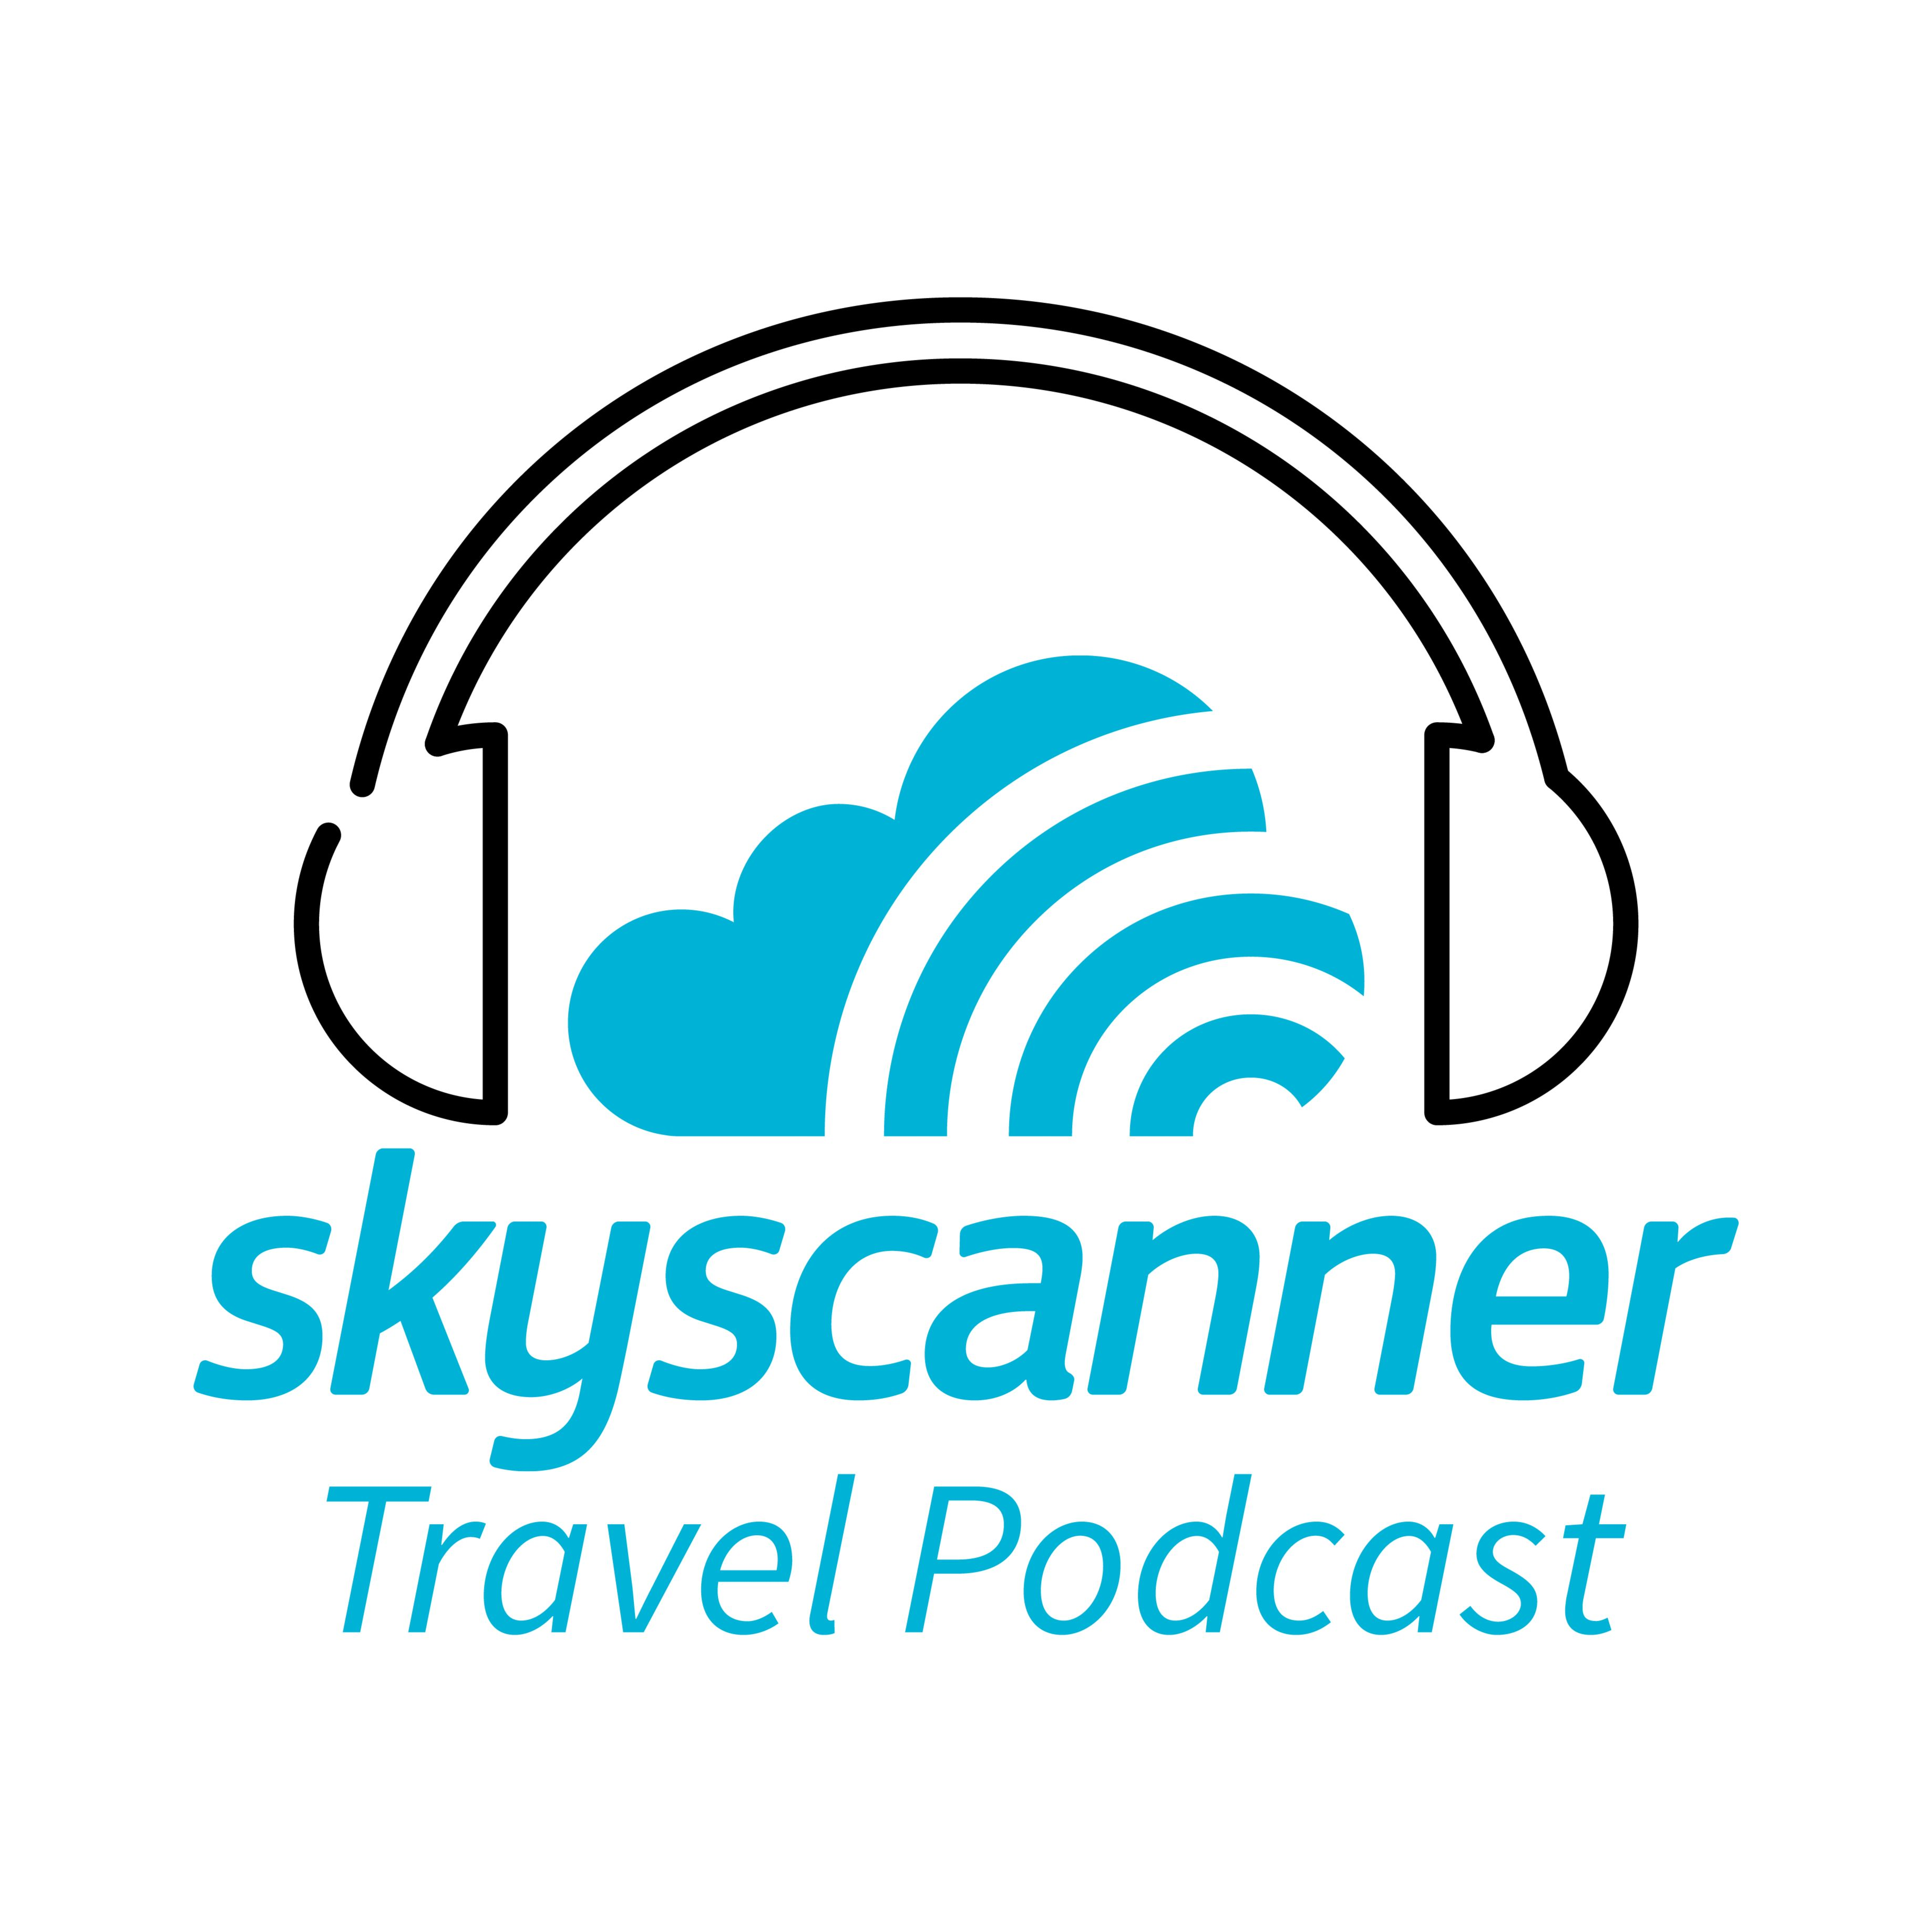 Skyscanner Travel Podcast